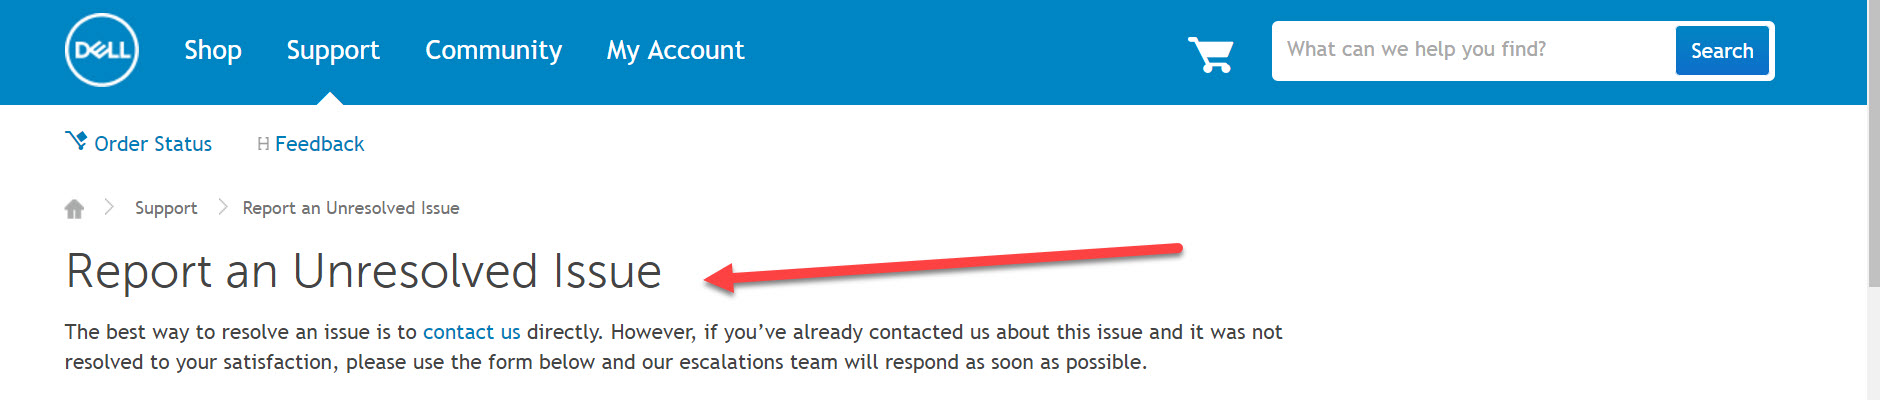 Report an Unresolved Issue Dell